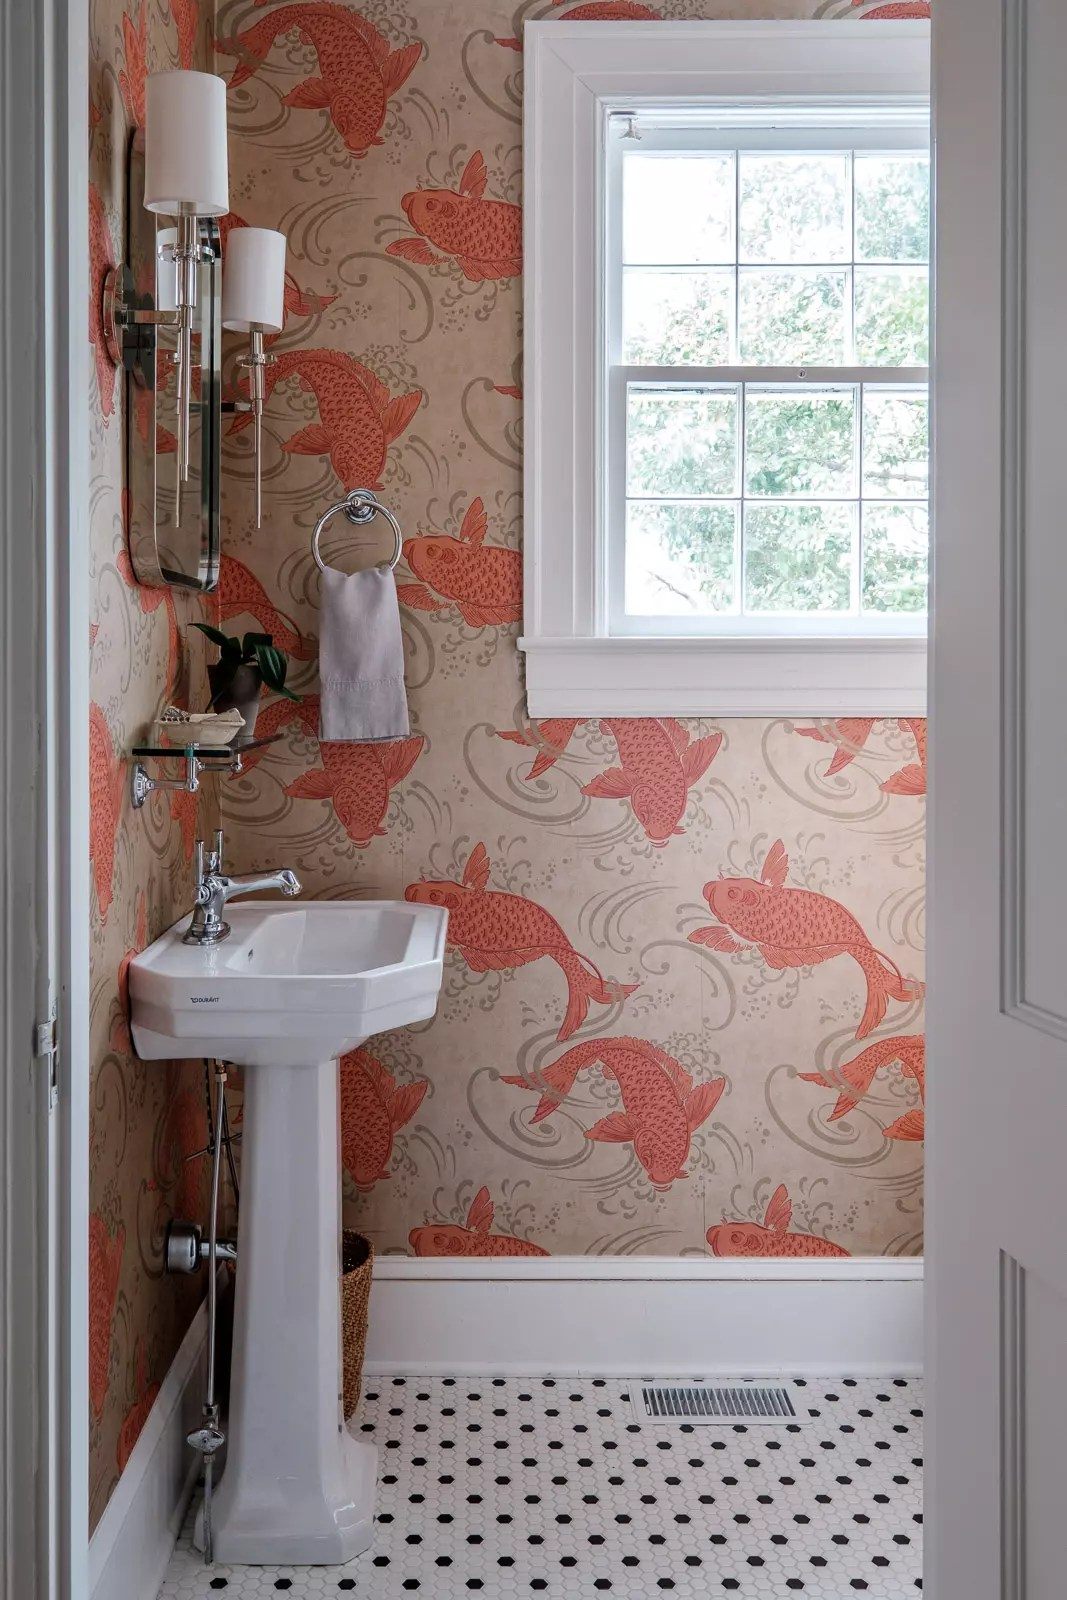 Koi wallpaper - interior designer